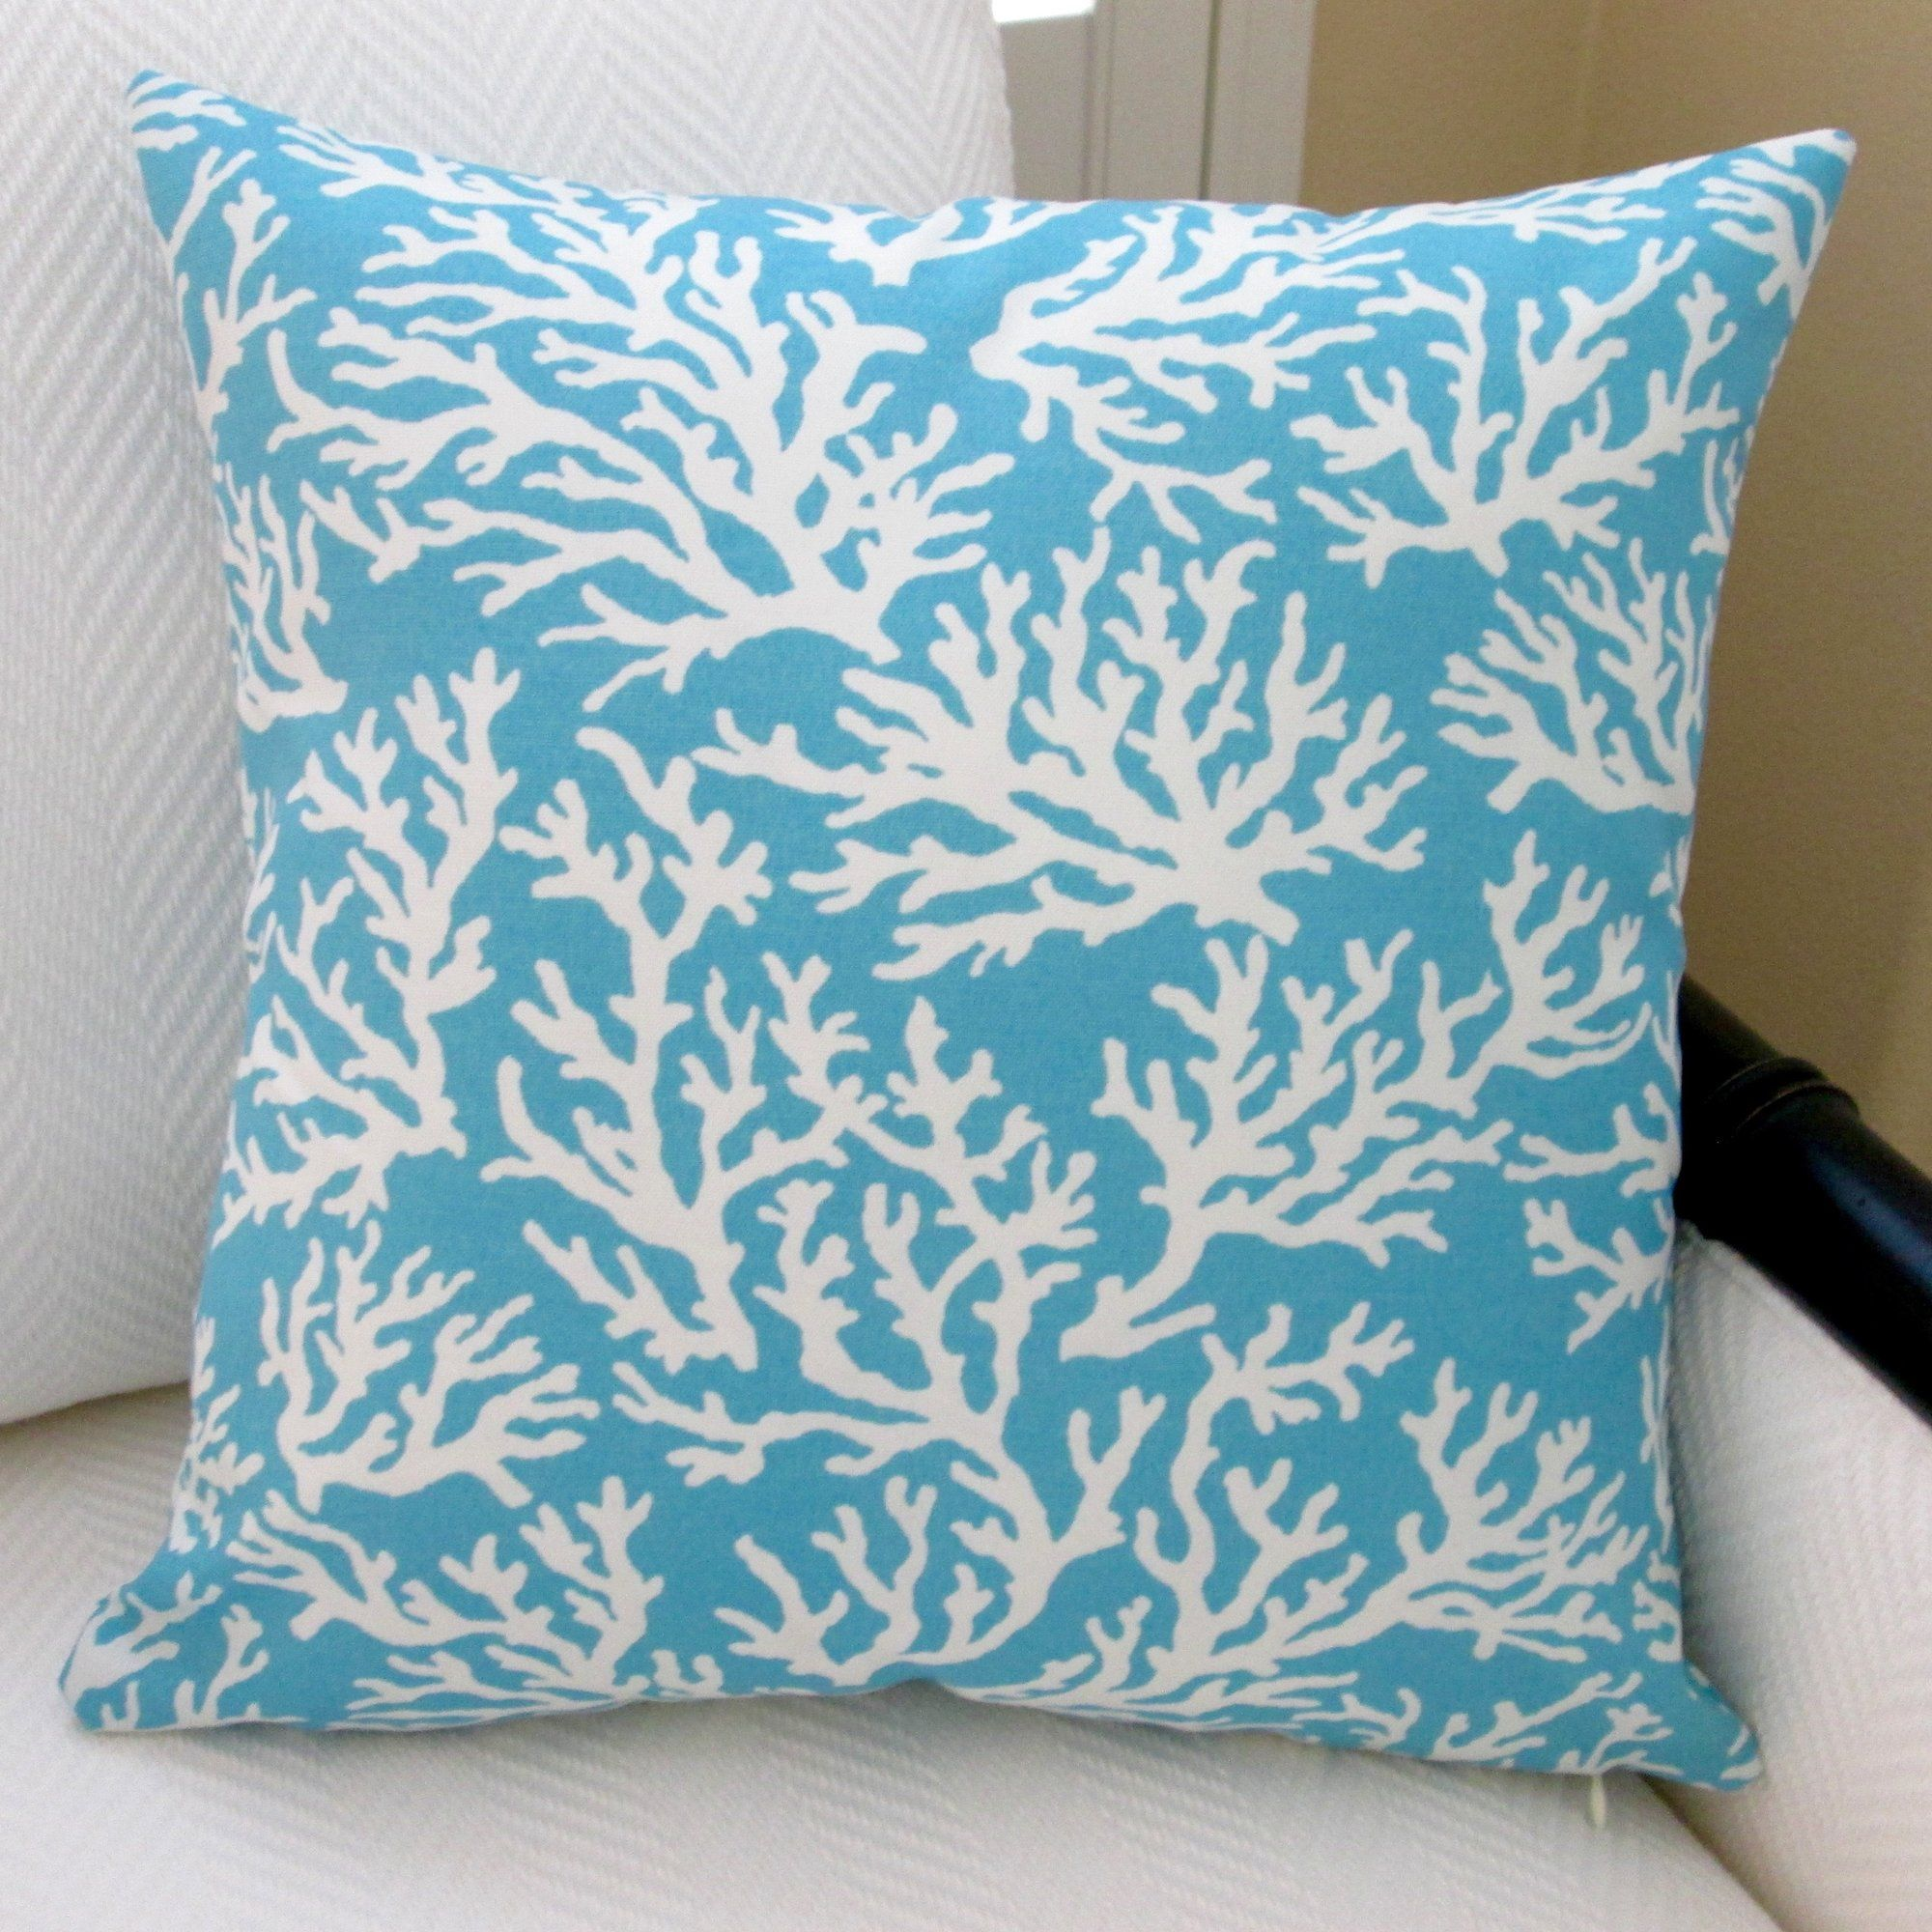 Pillows & Nautical Pillow Covers